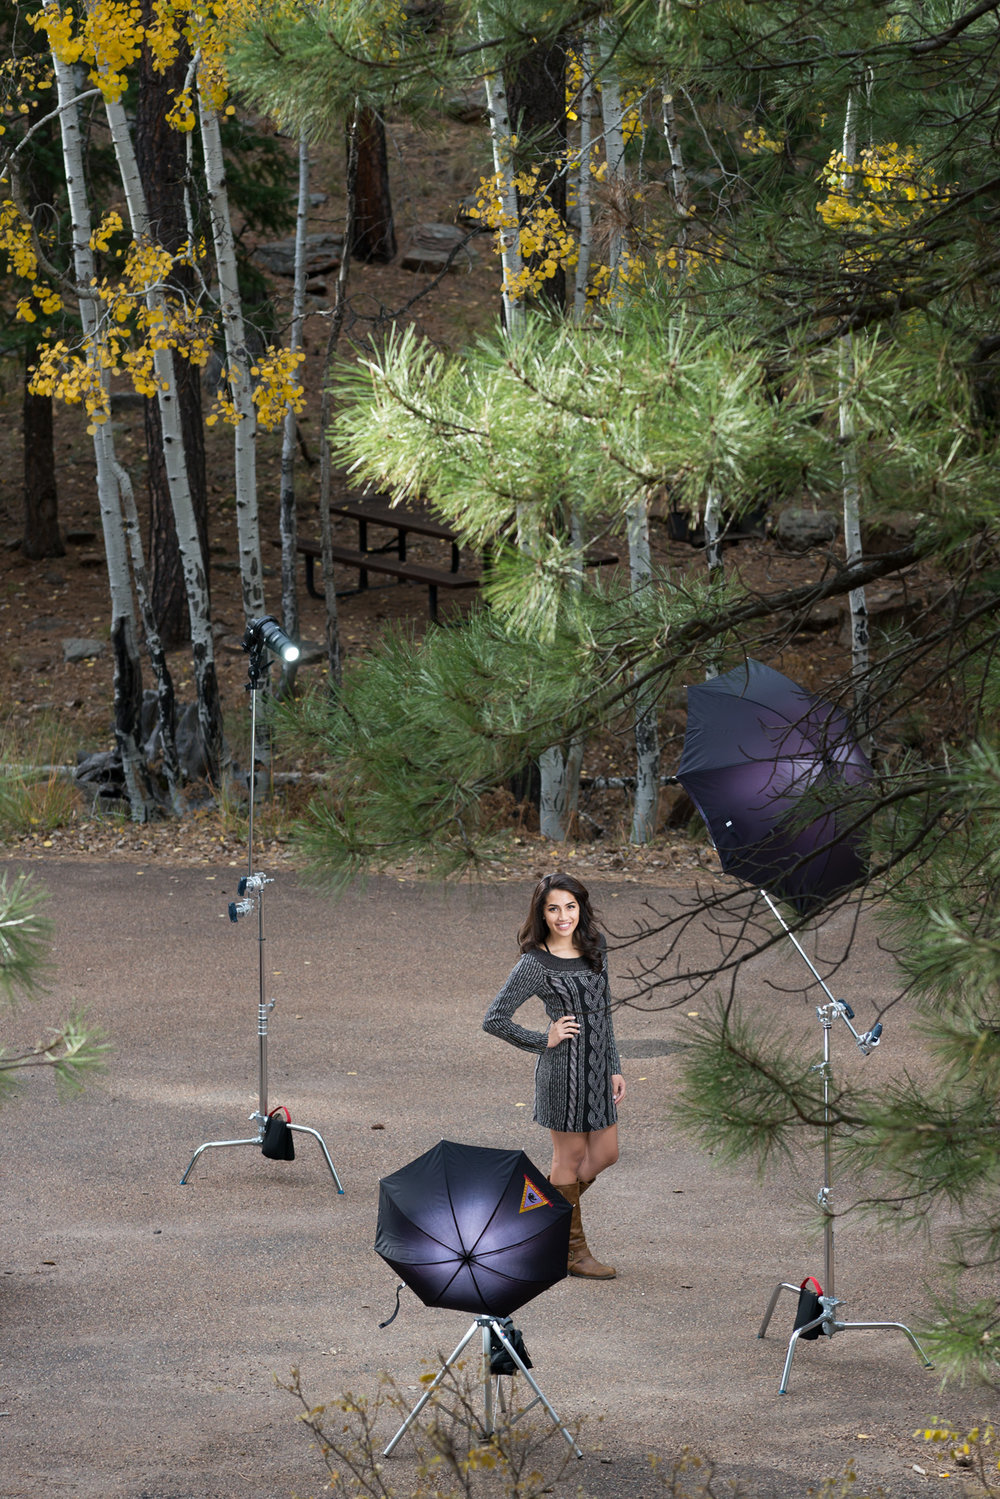 Classic three-point lighting for an outdoor portrait provides the lighting in this pull-back photo